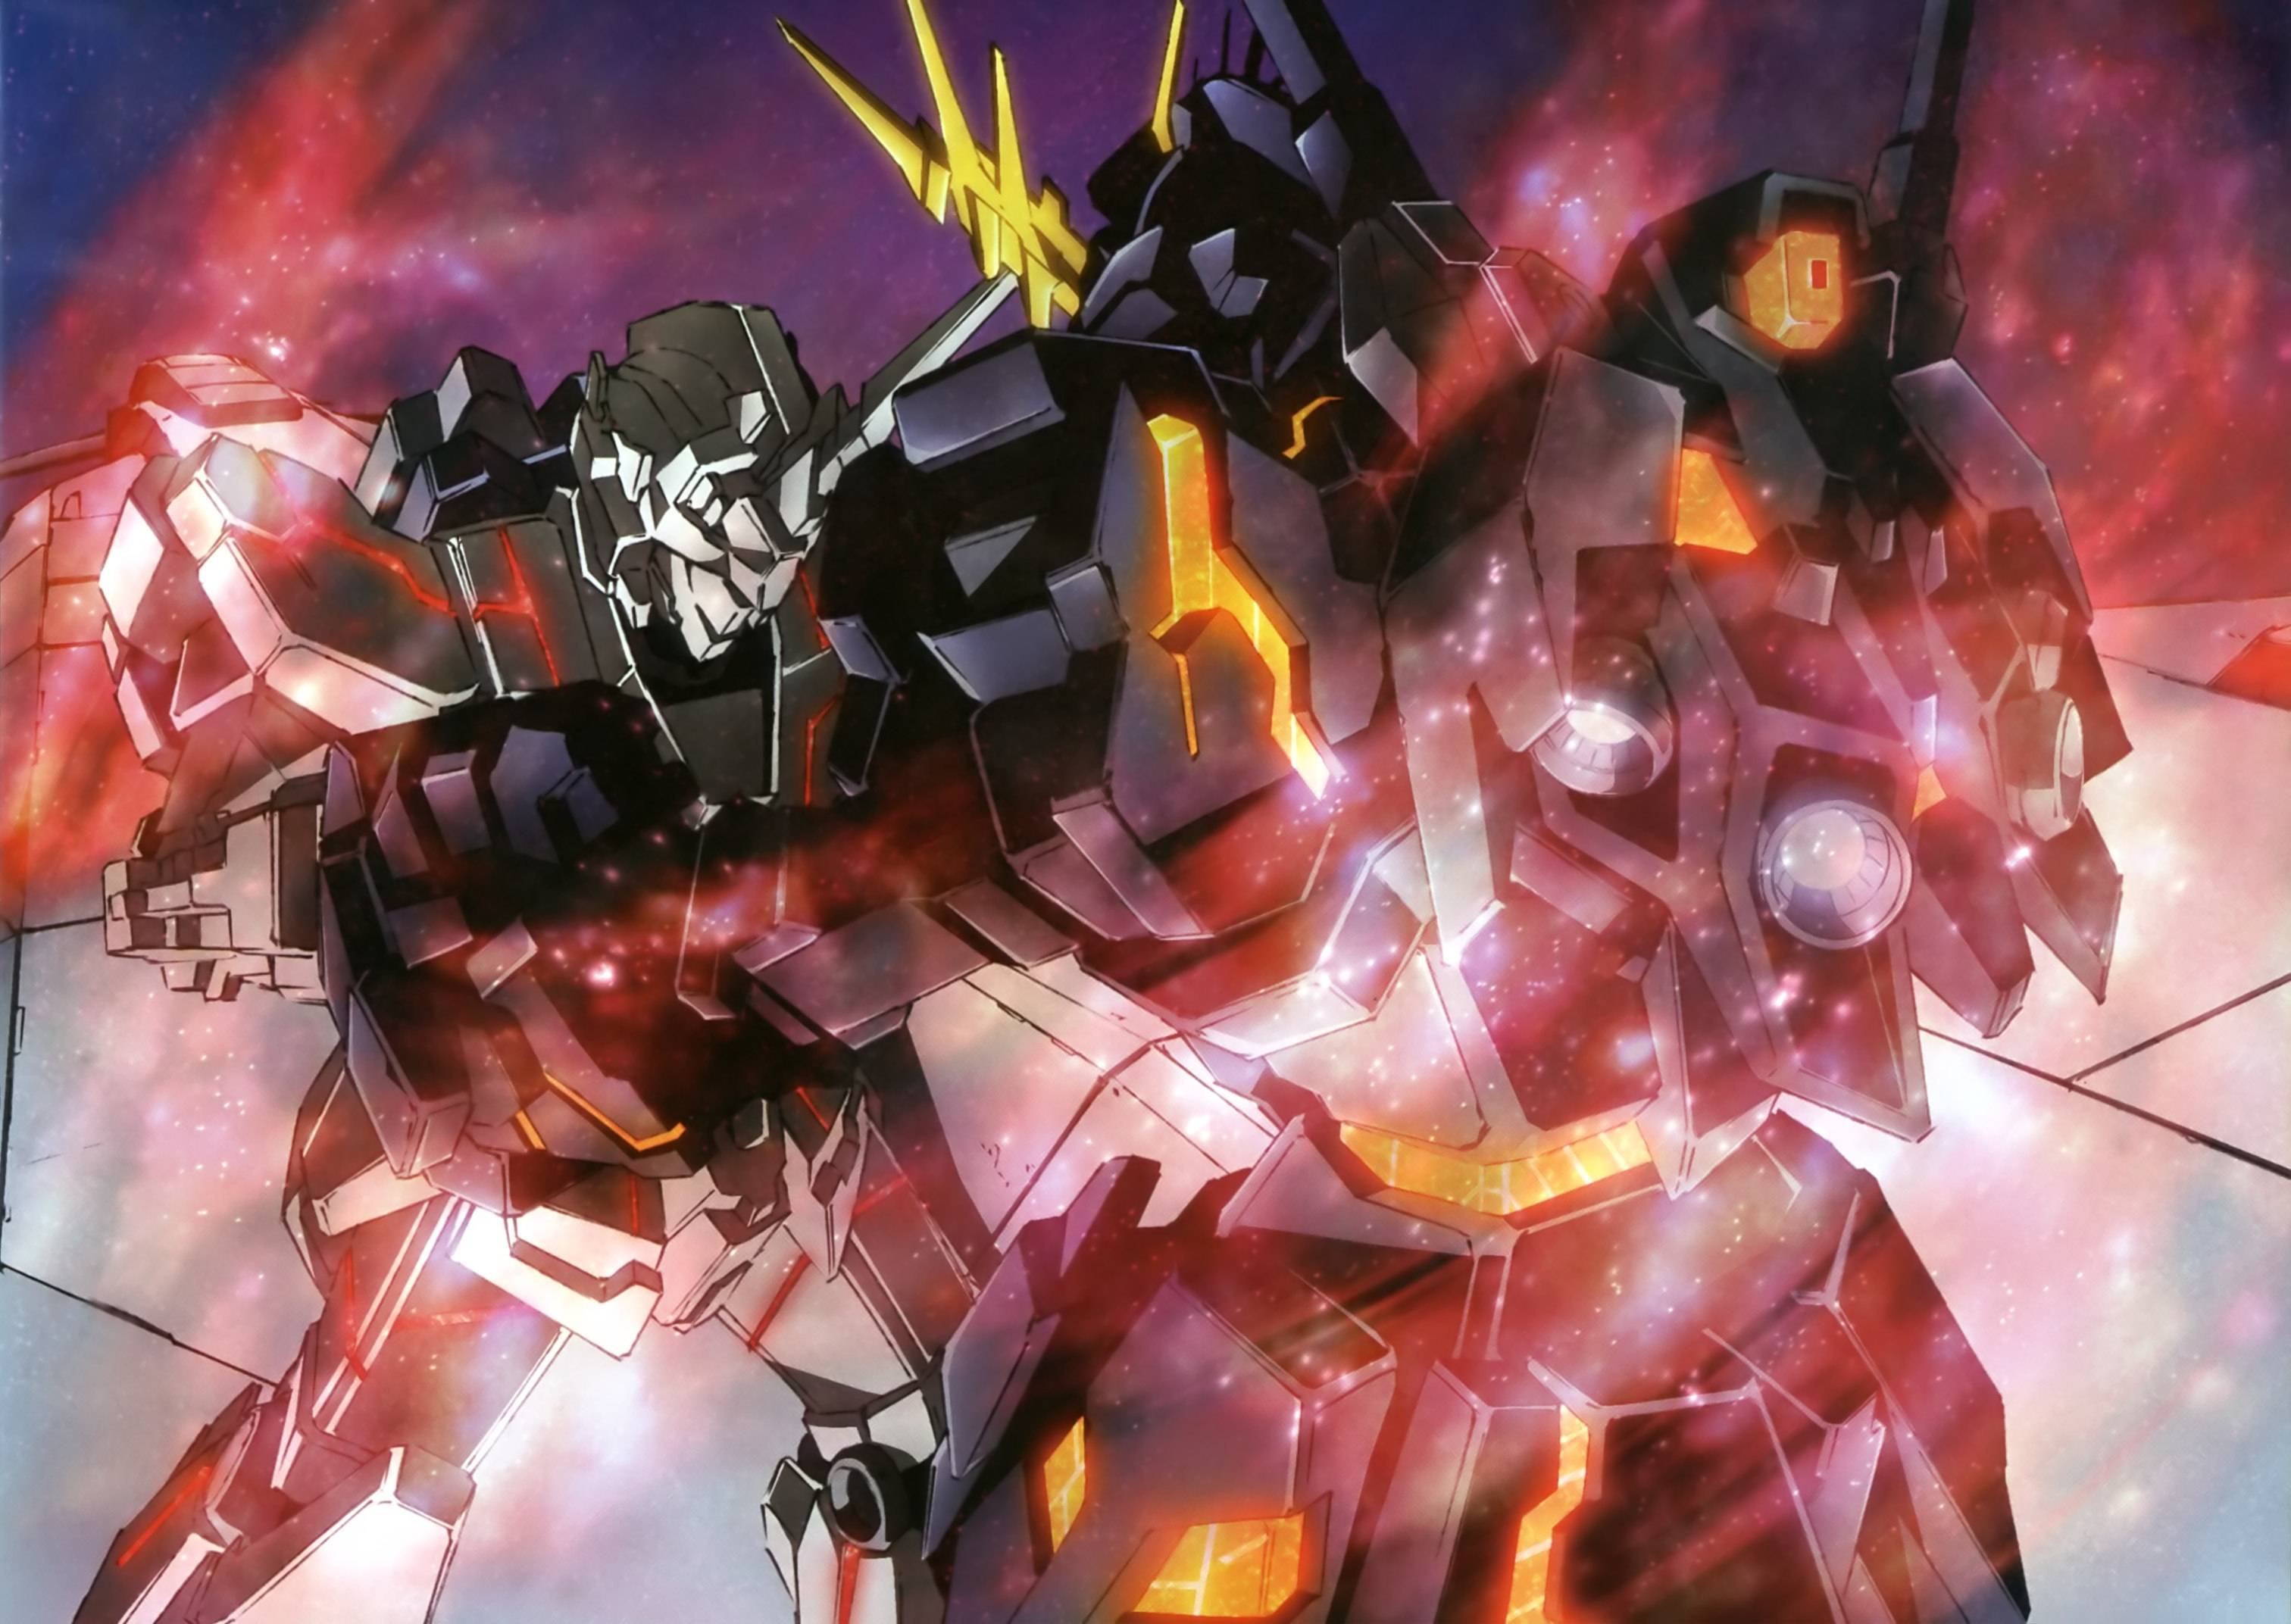 Gundam Unicorn Wallpapers - Wallpaper Cave Gundam Banshee Wallpaper